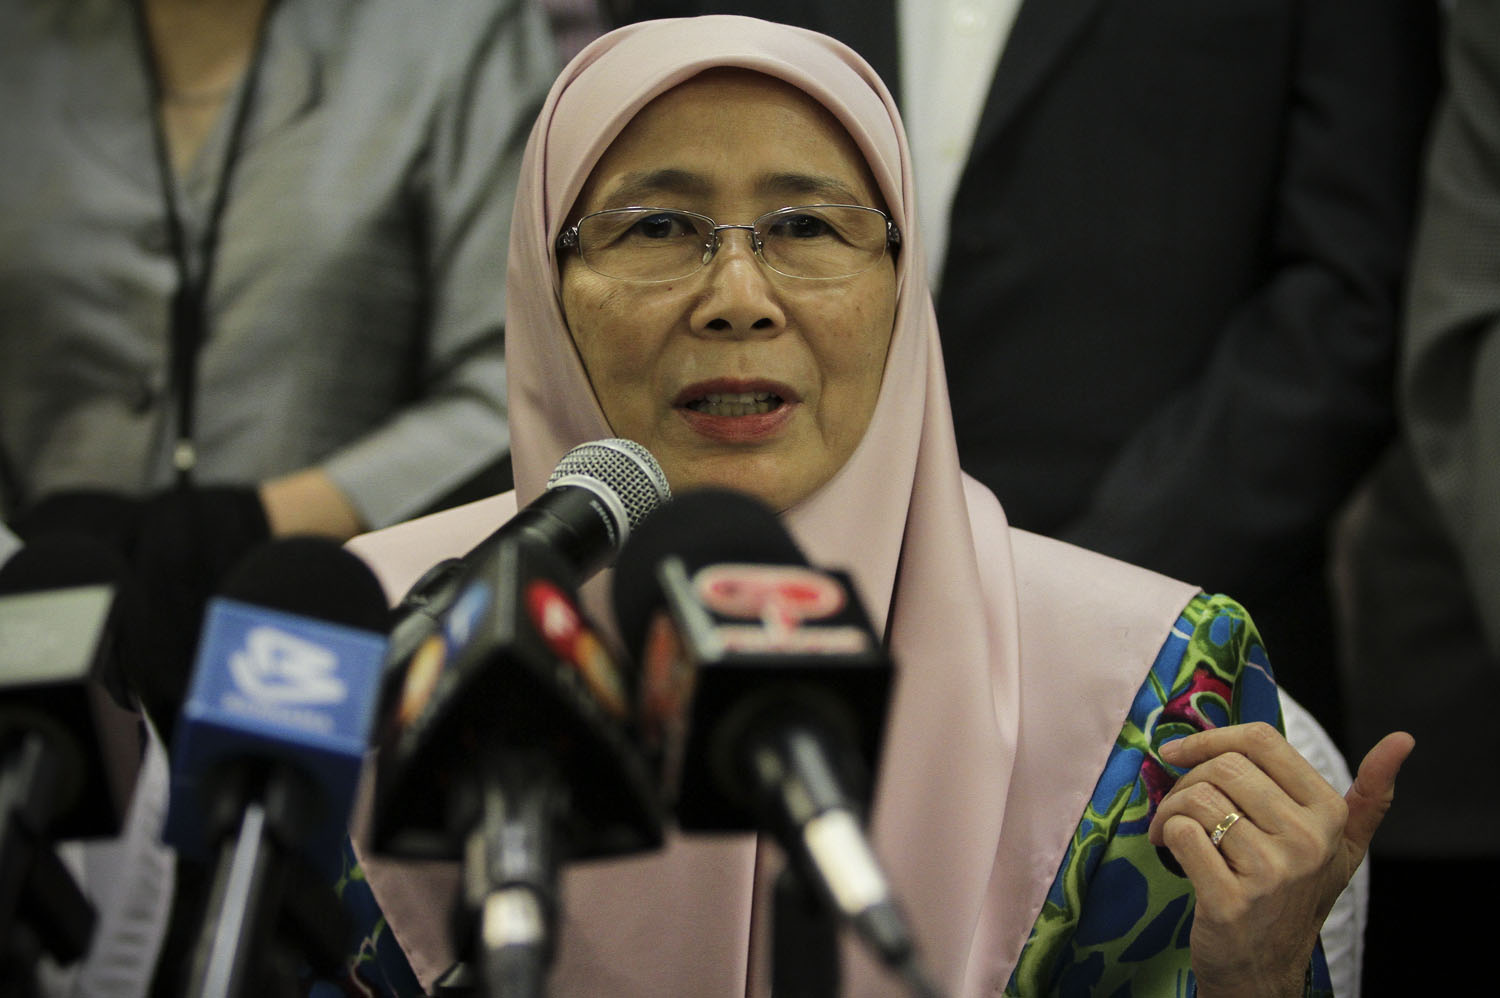 Opposition Leader Datuk Seri Wan Azizah Wan Ismail at a press conference in Subang, September 22, 2015. — Picture by Yusof Mat Isa